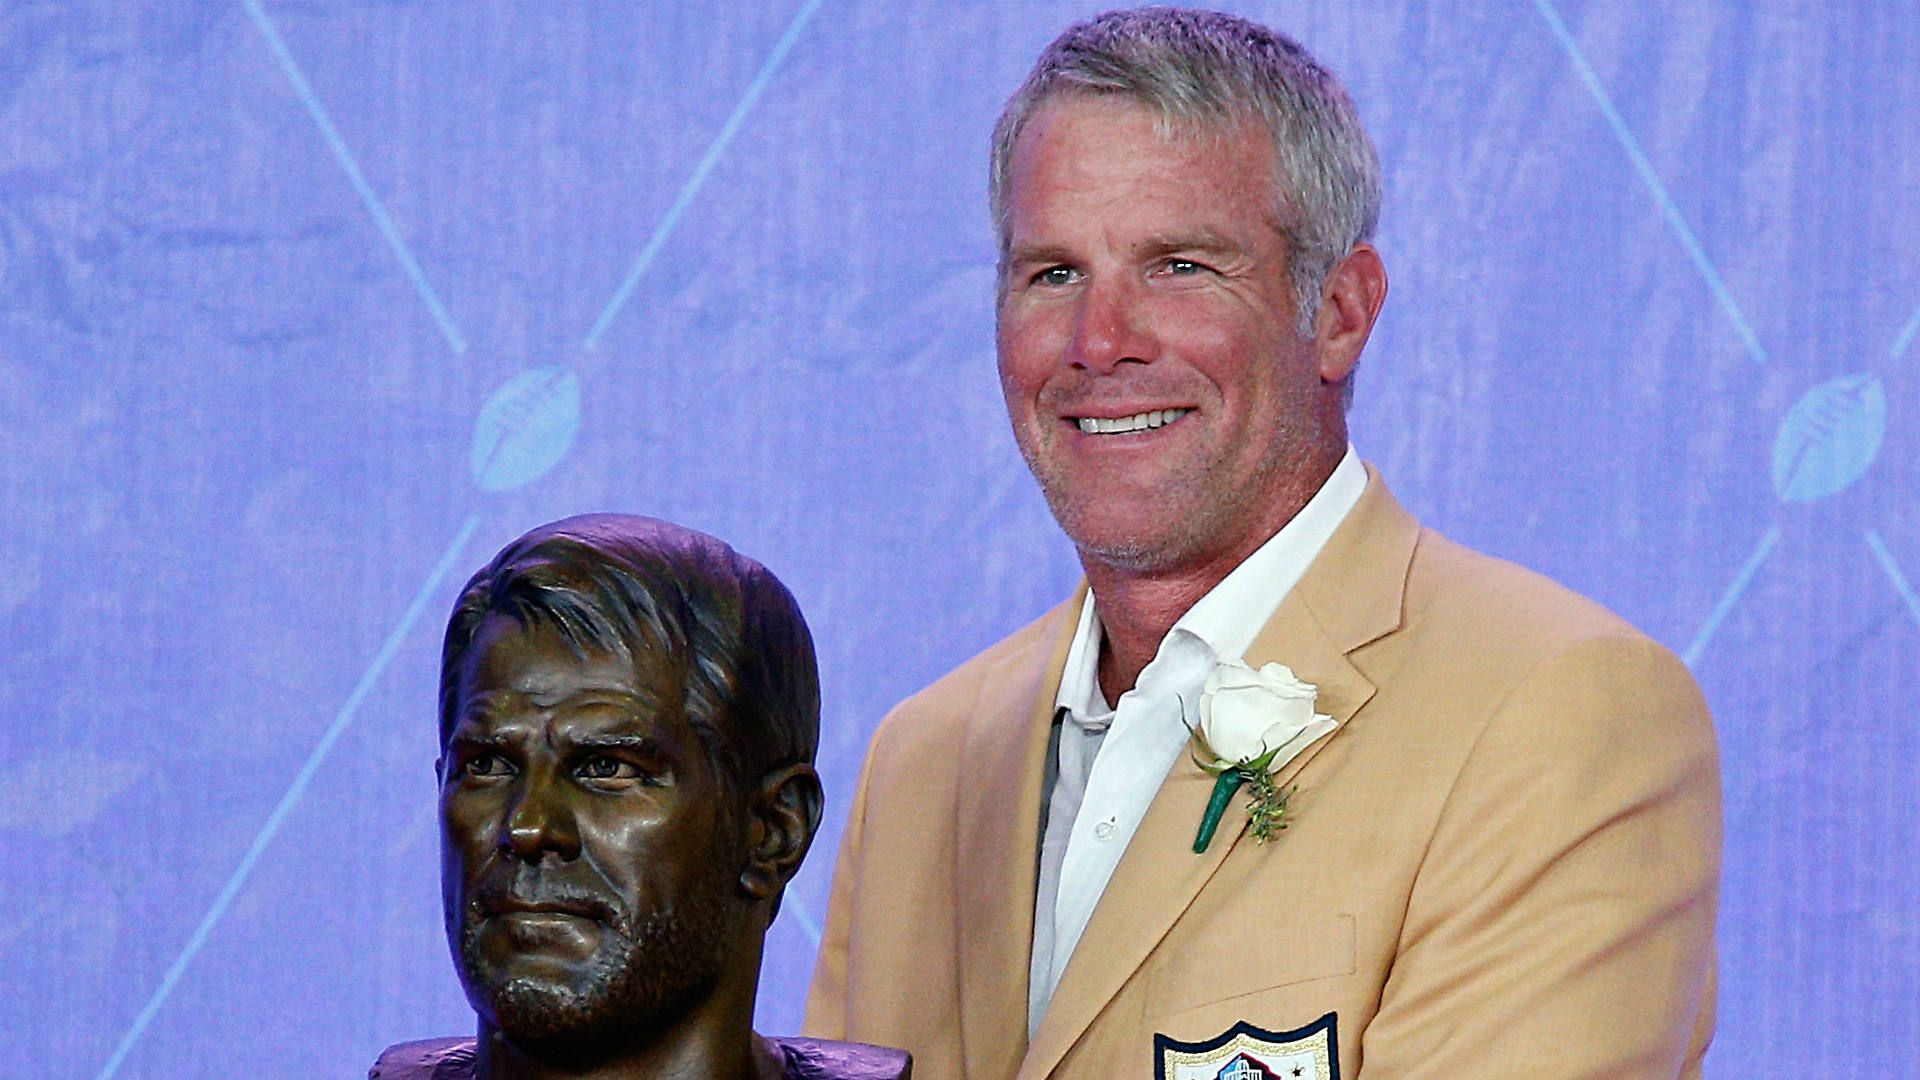 Brett Favre just taught us everything about fathers and